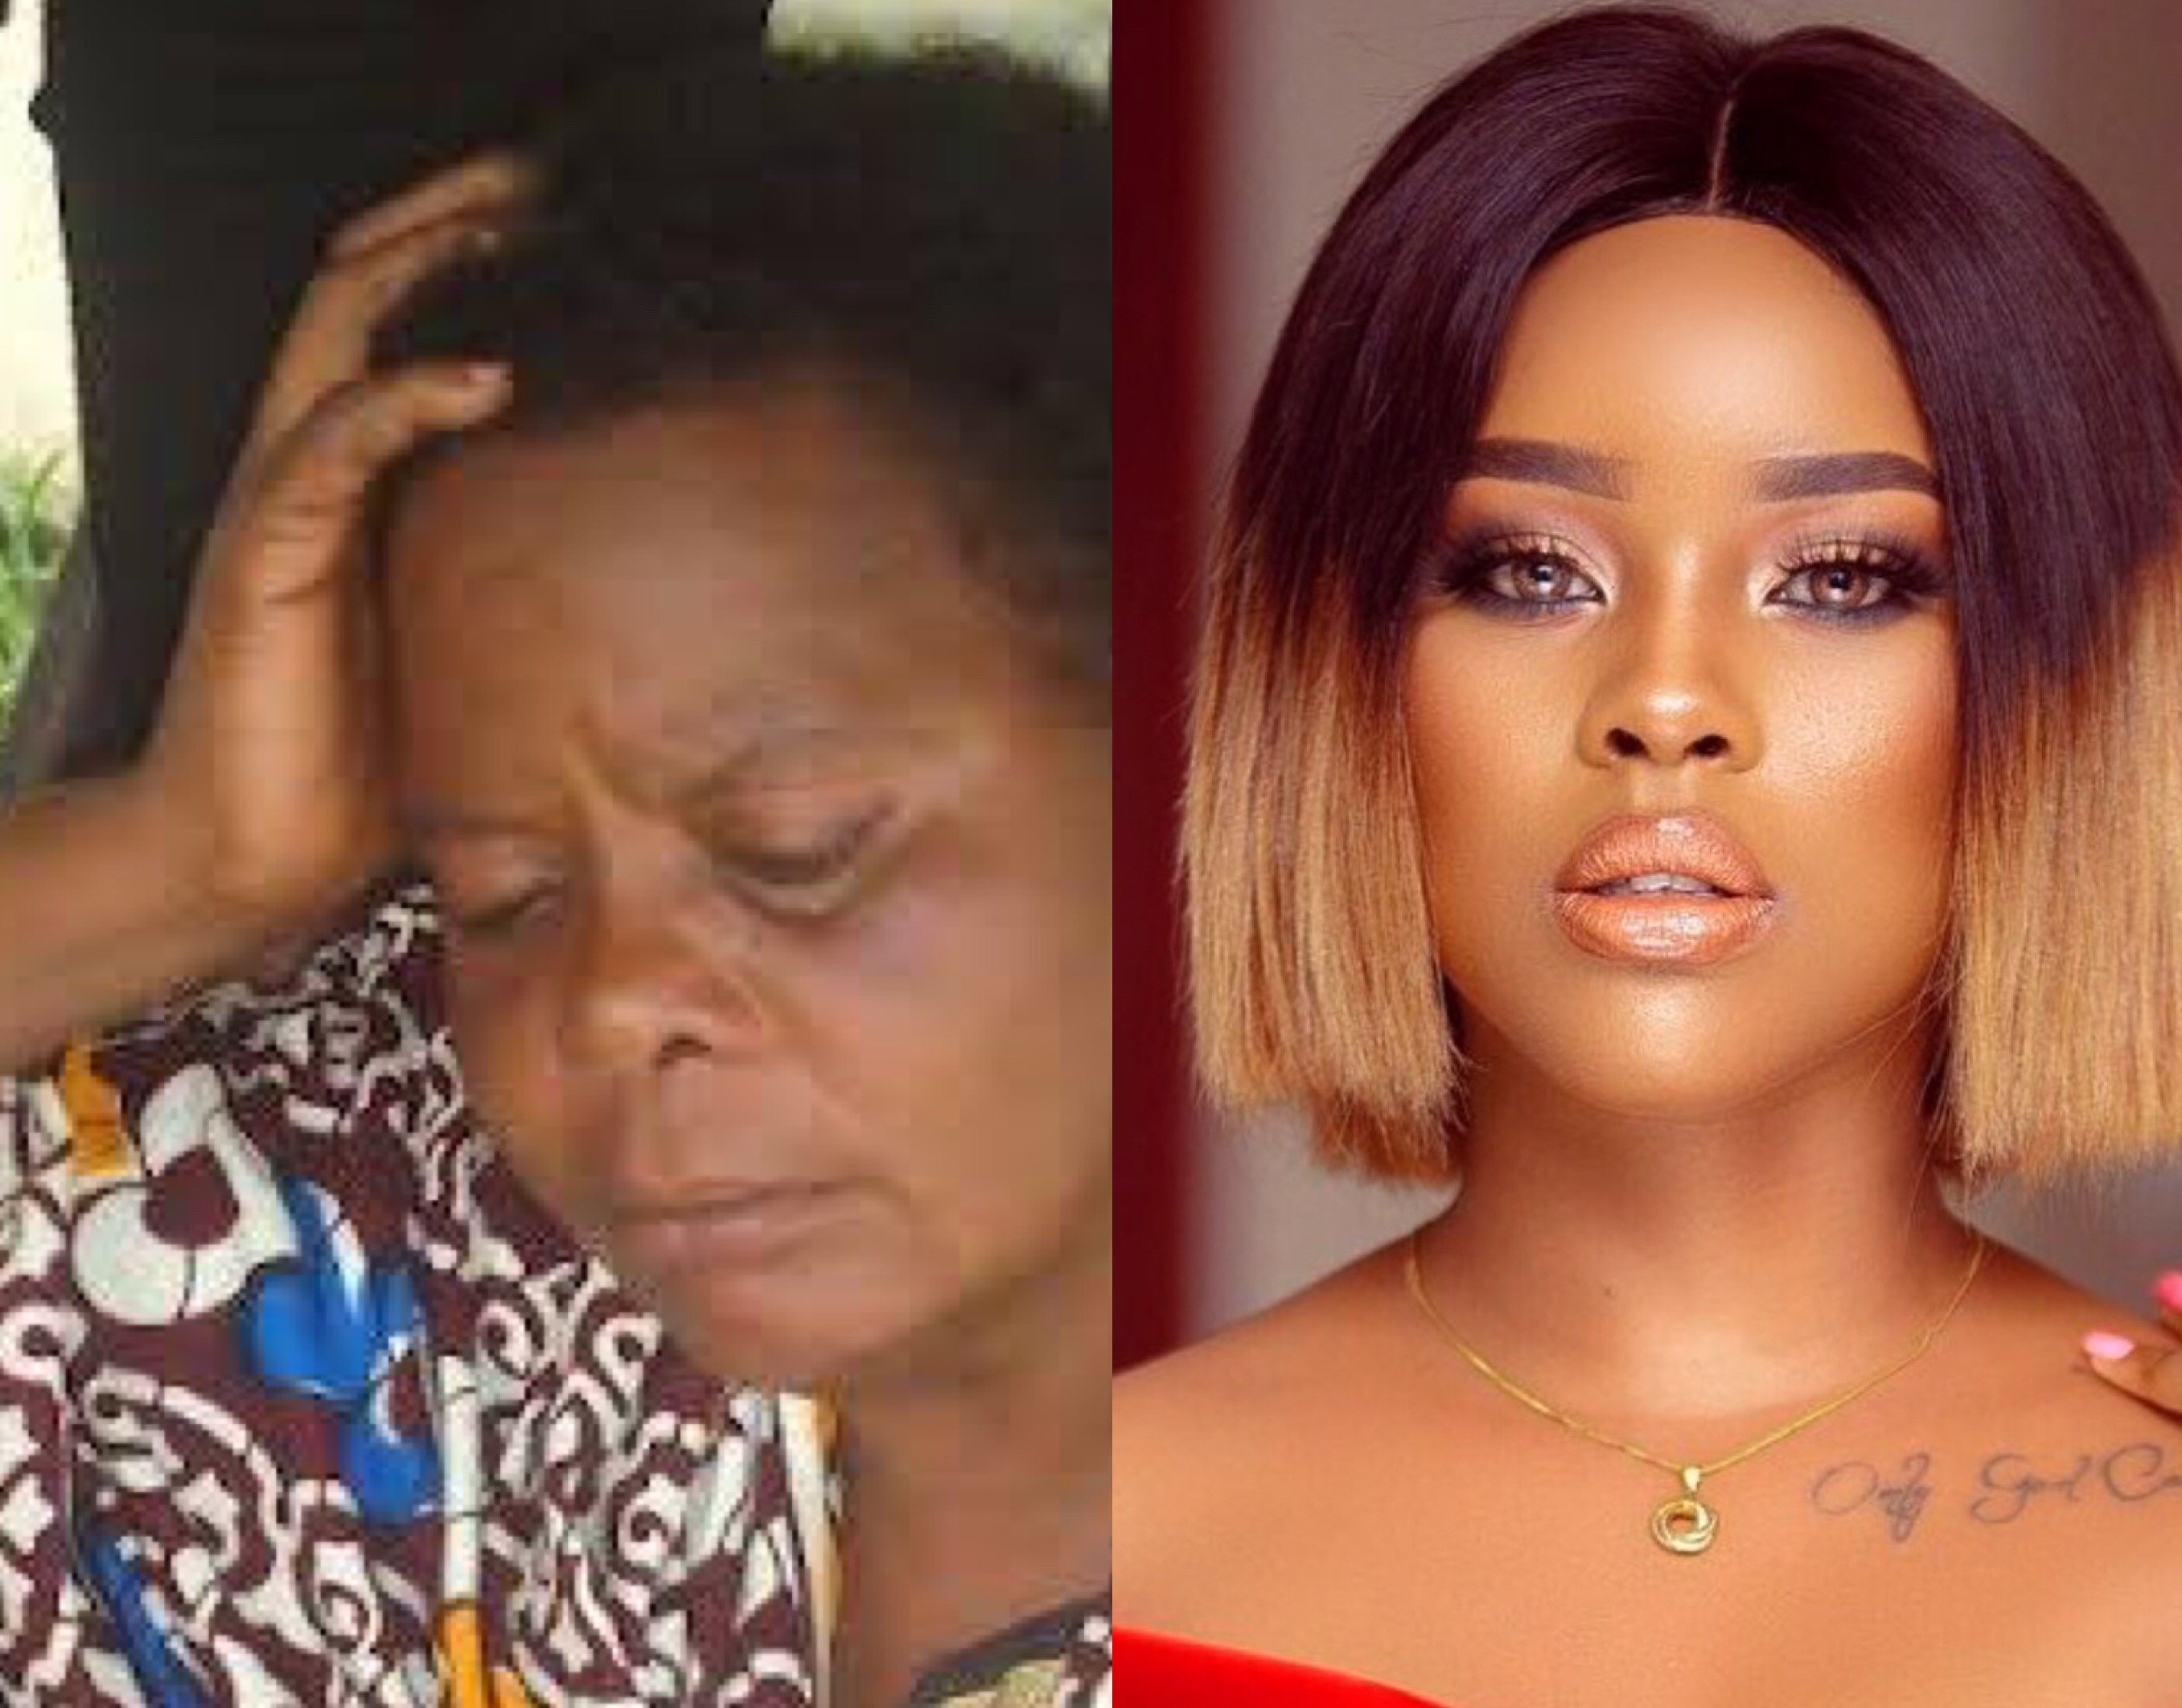 Steve Kanumba mum fears that actress Lulu Micheal will insult her after leaving jail